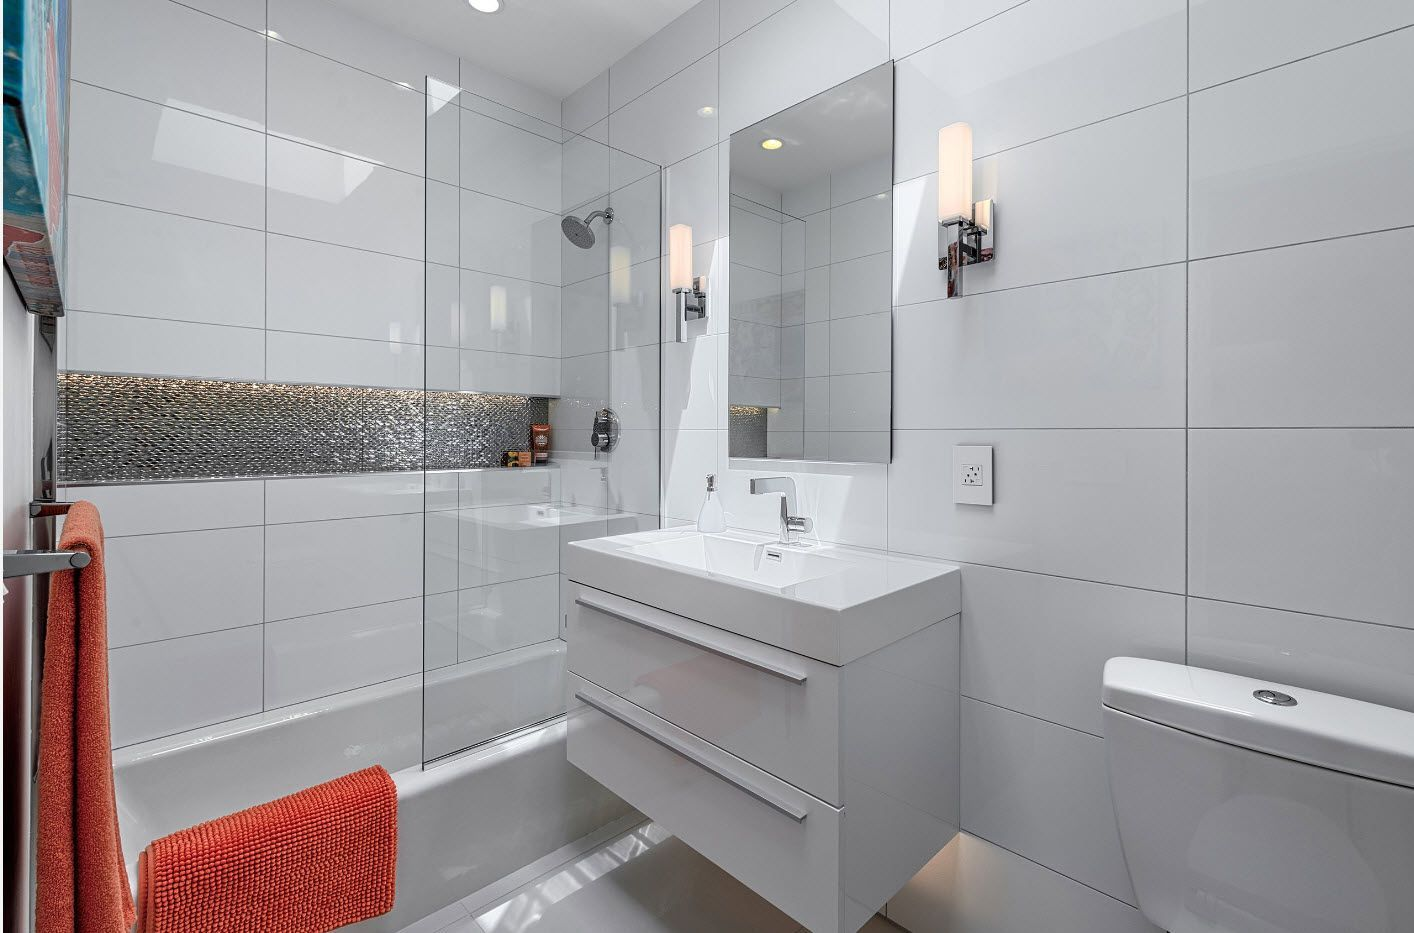 Suspended vanity and glass screen for shower